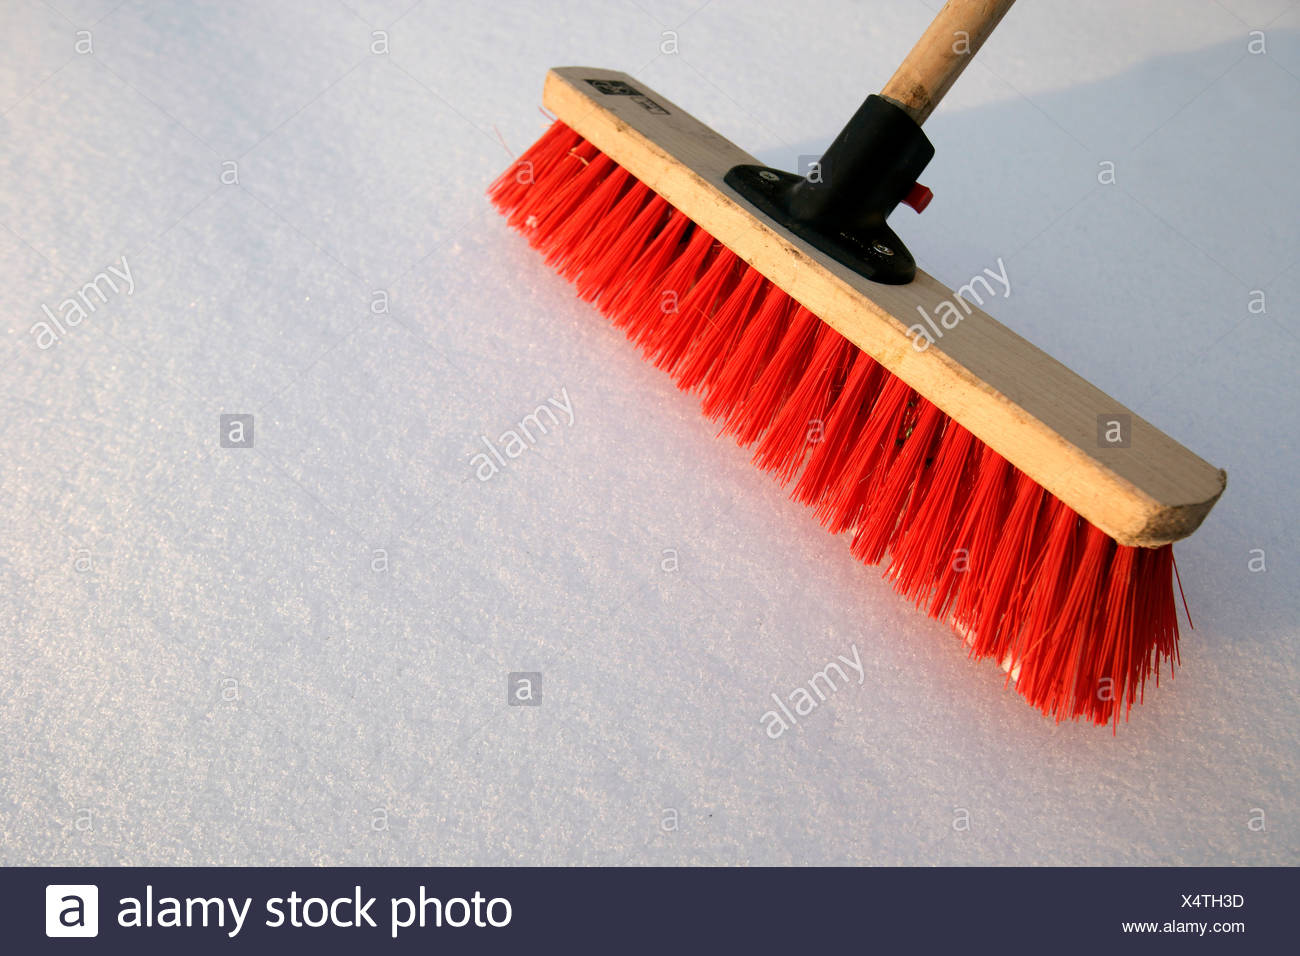 Broom Bristles Stock Photos Amp Broom Bristles Stock Images